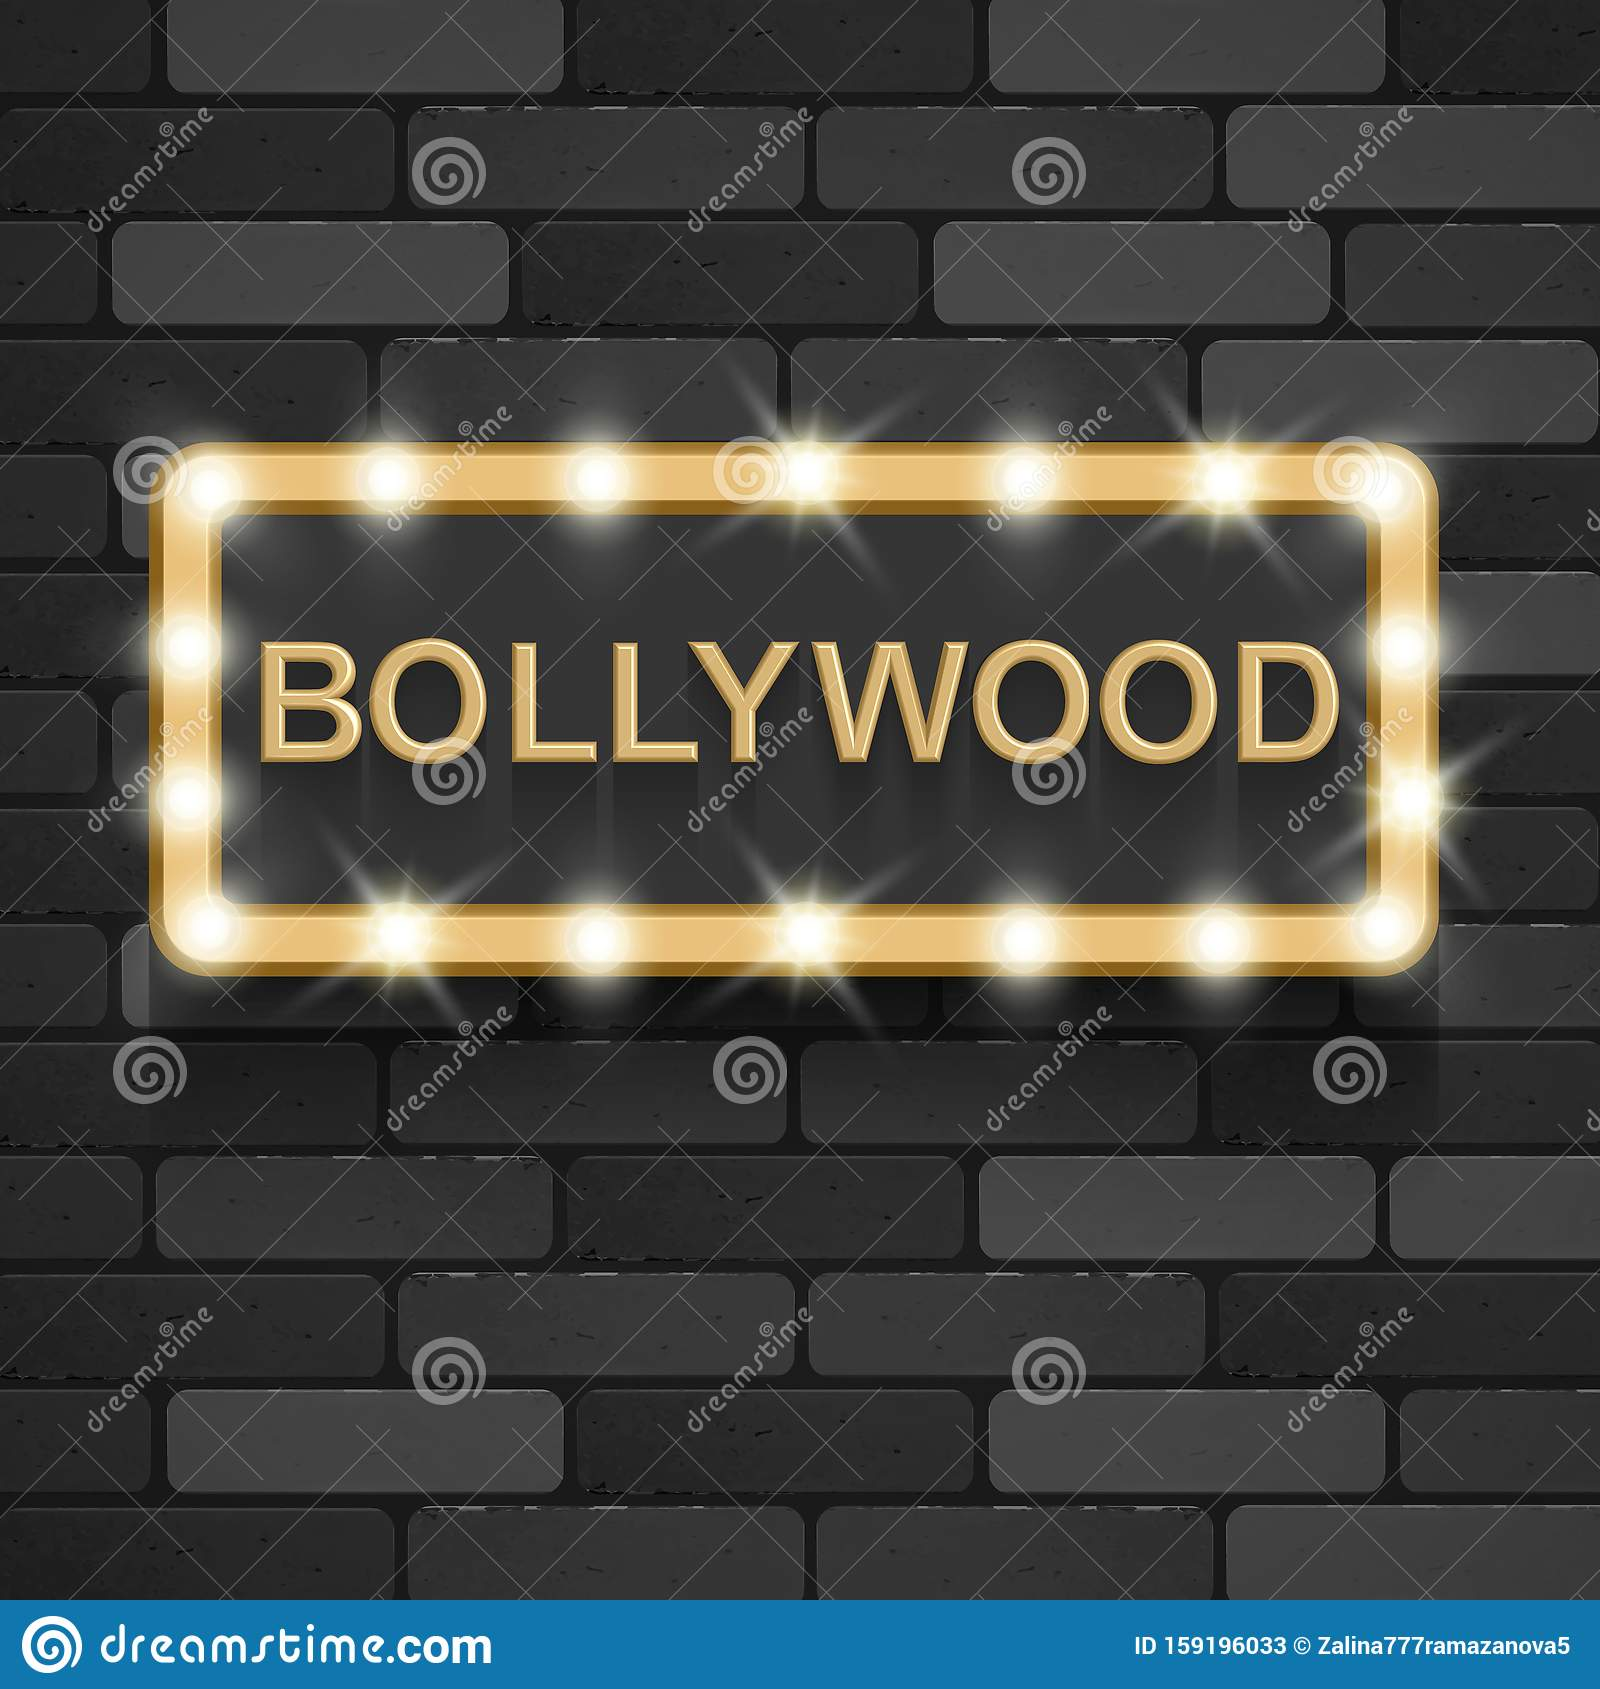 Bollywood Cinema. Indian Movie, 3d Classic Film Posters